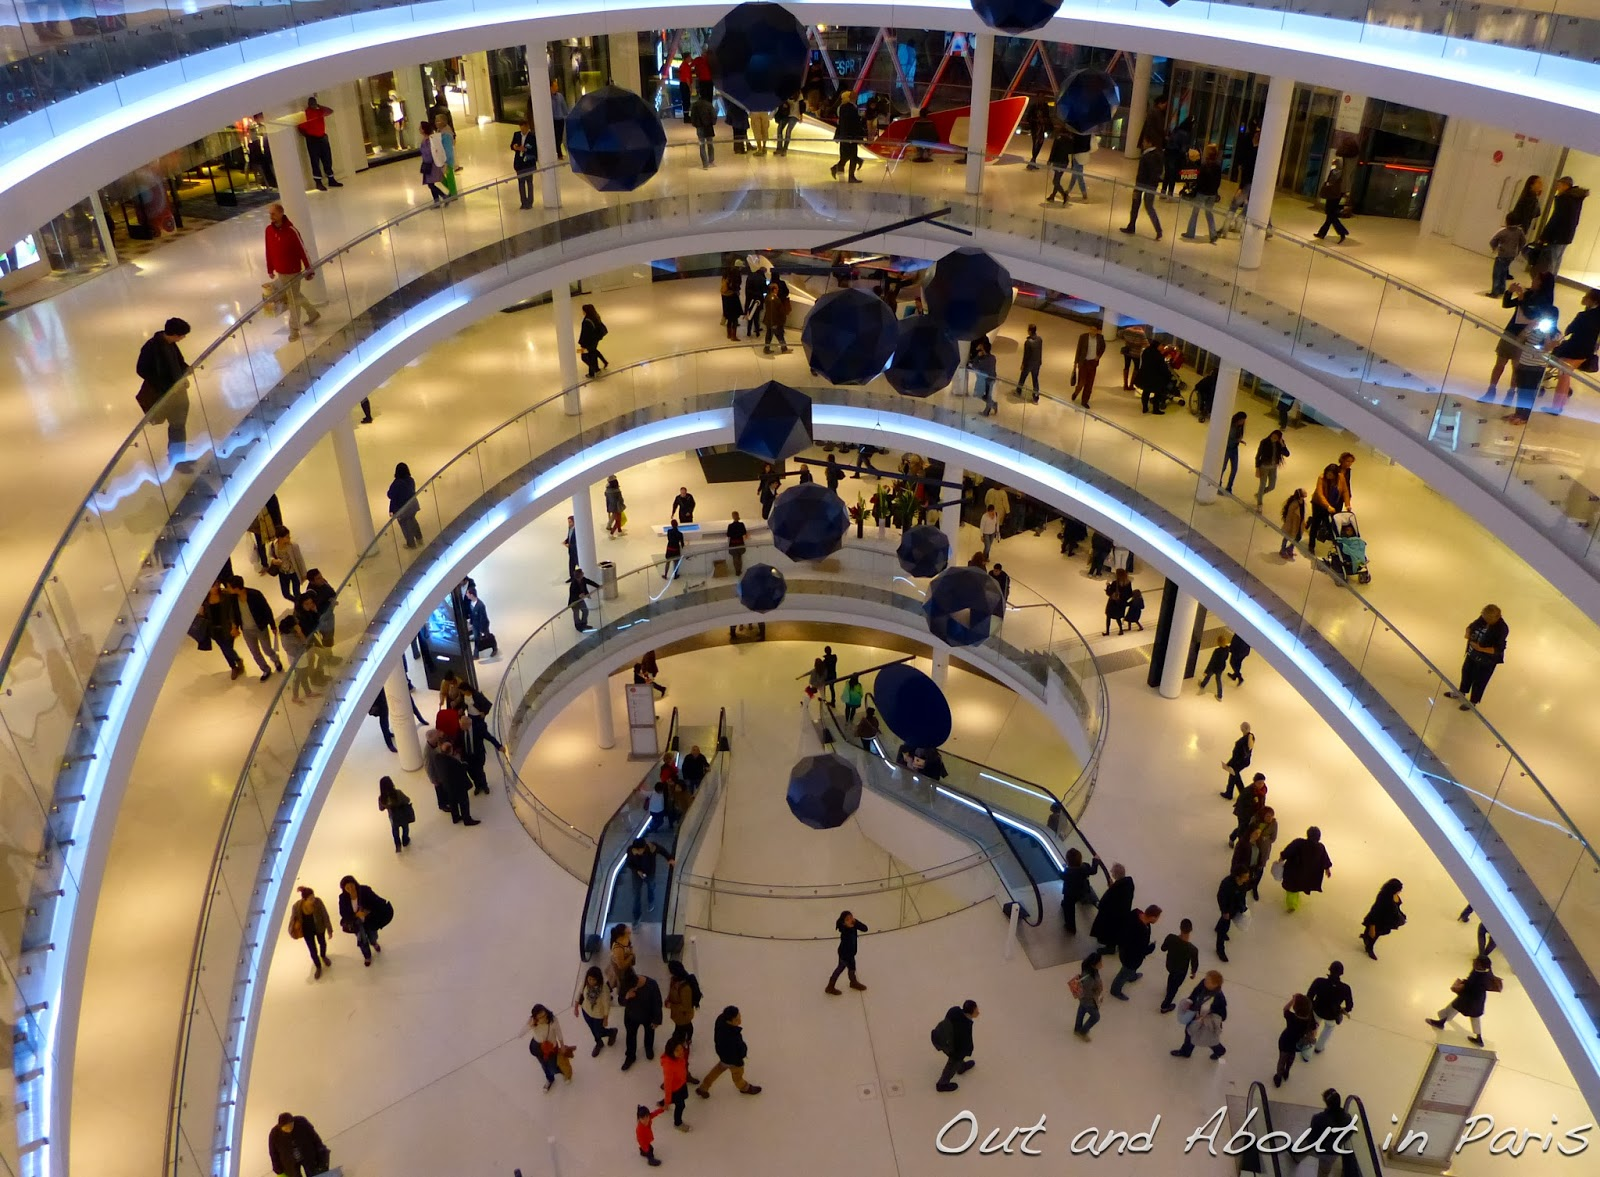 Paris Bourges Bus Beaugrenelle Paris The Newest Shopping Center In Paris With Free